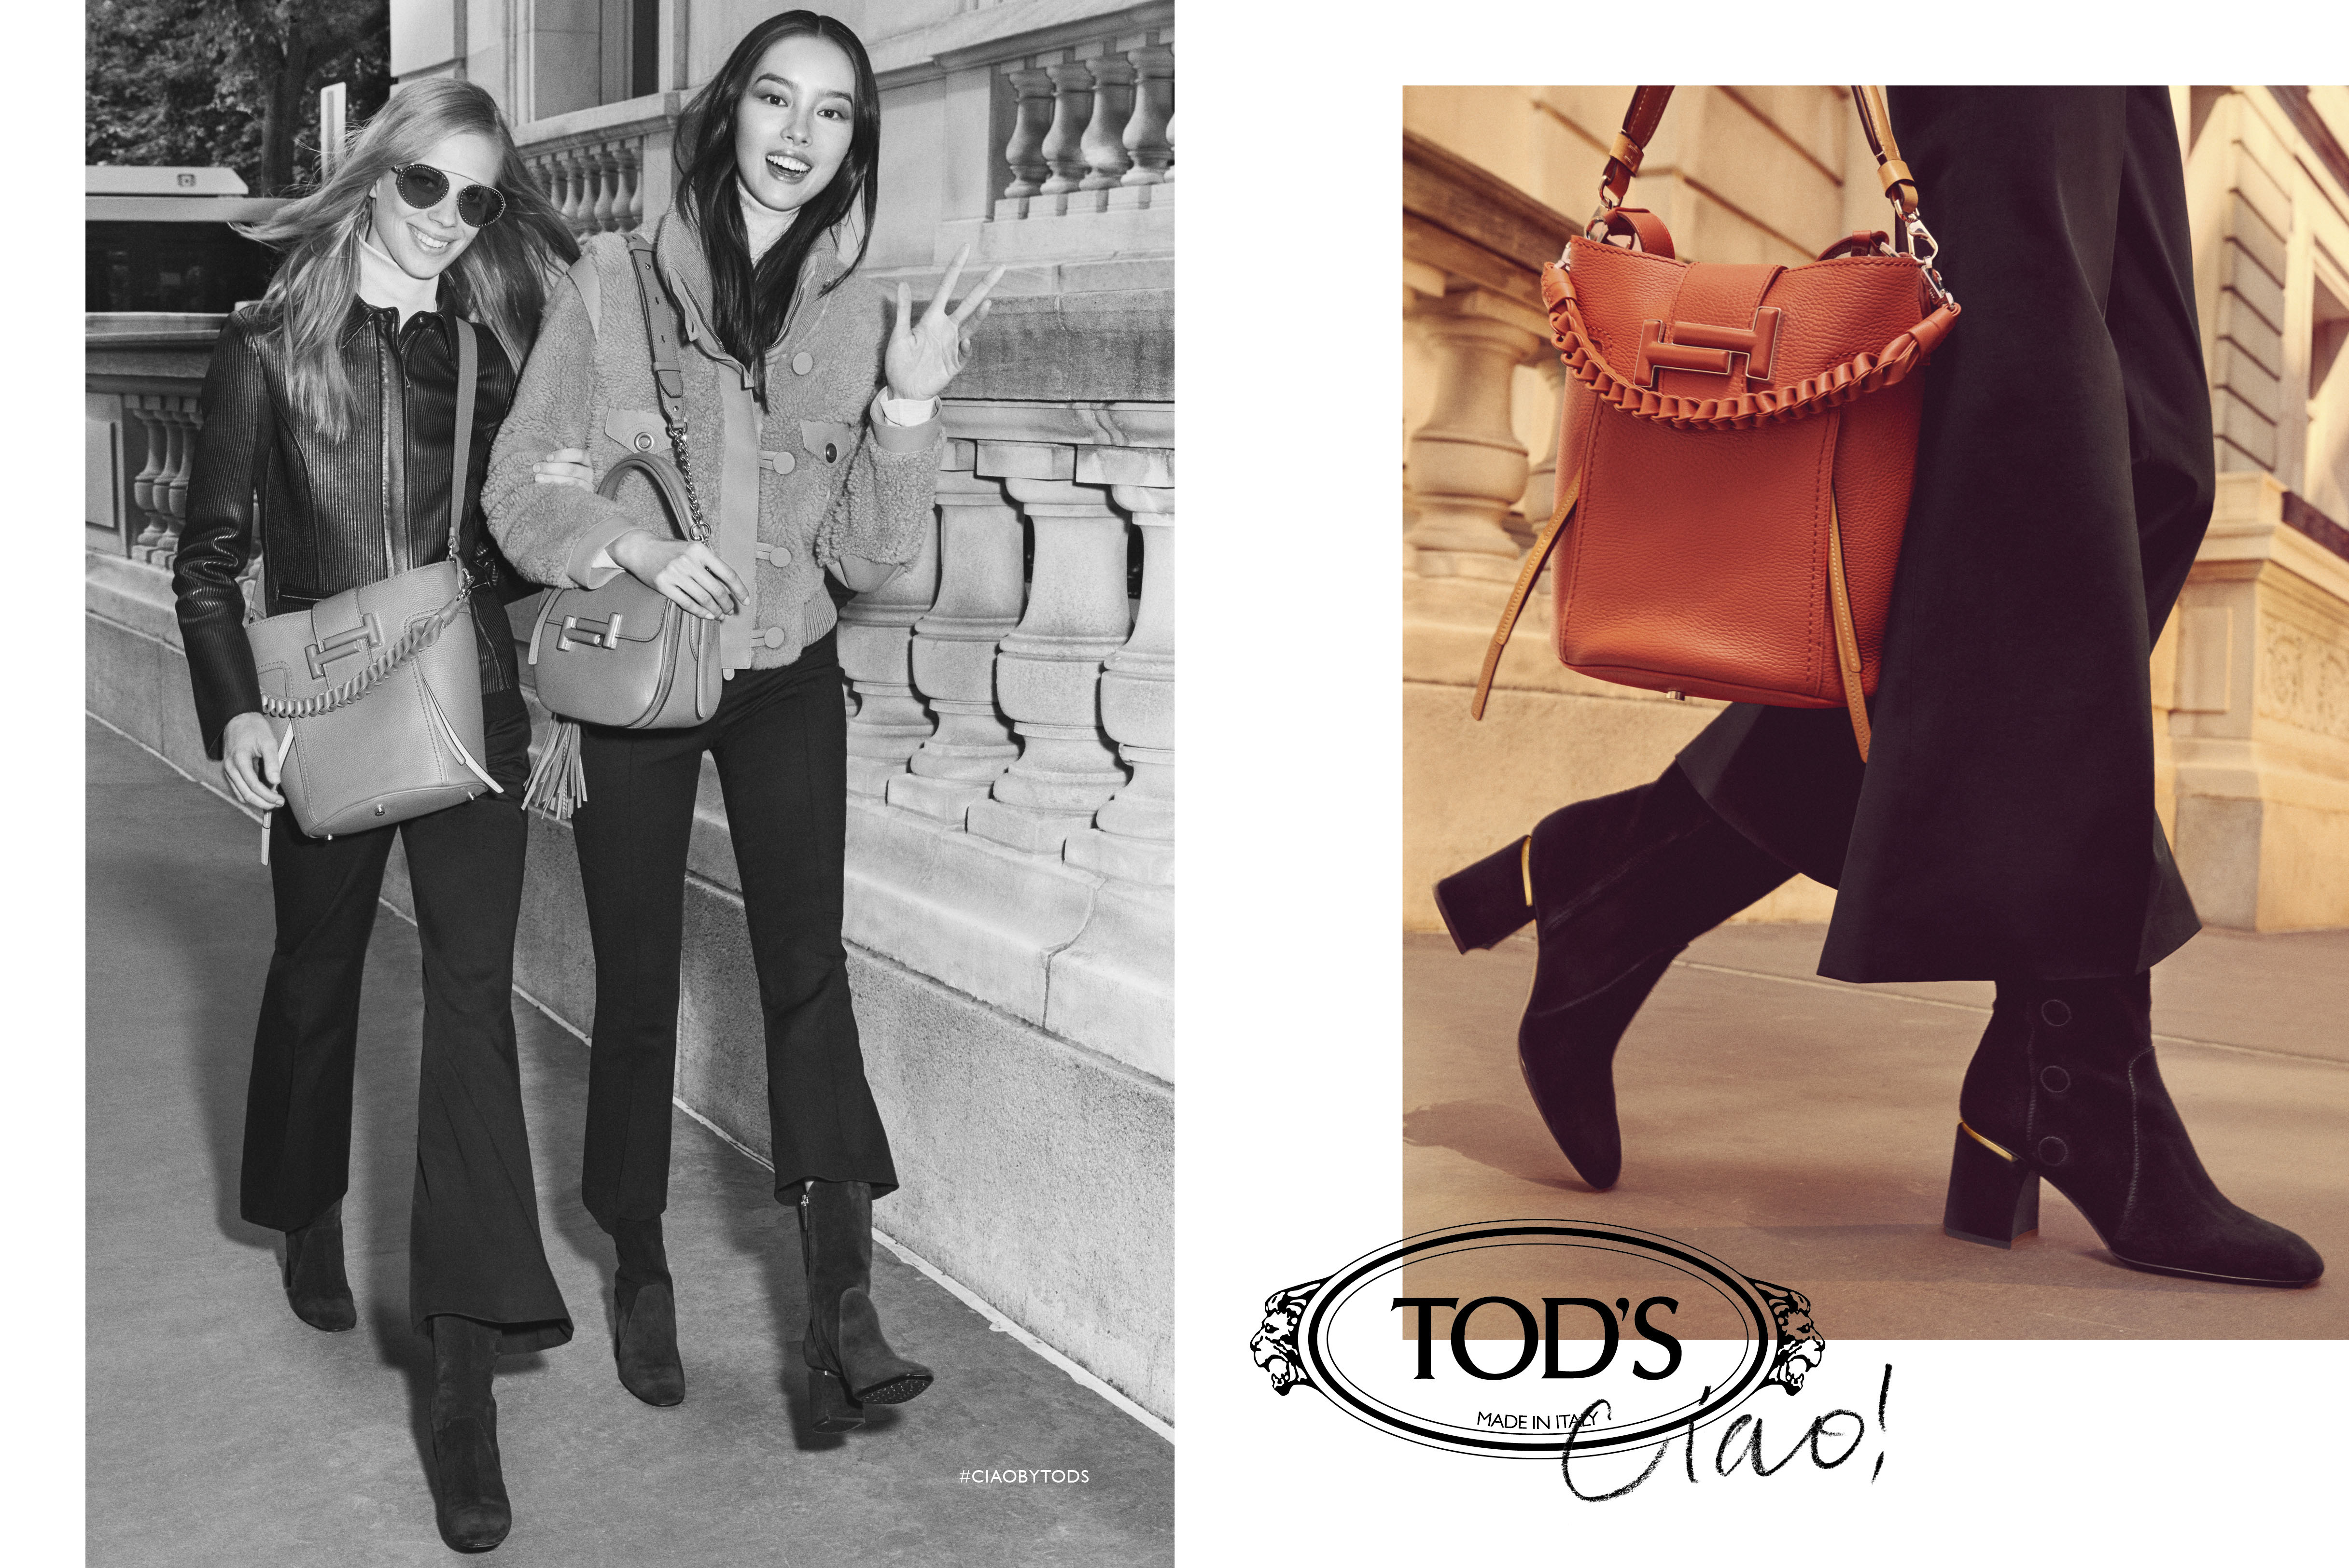 tods 2